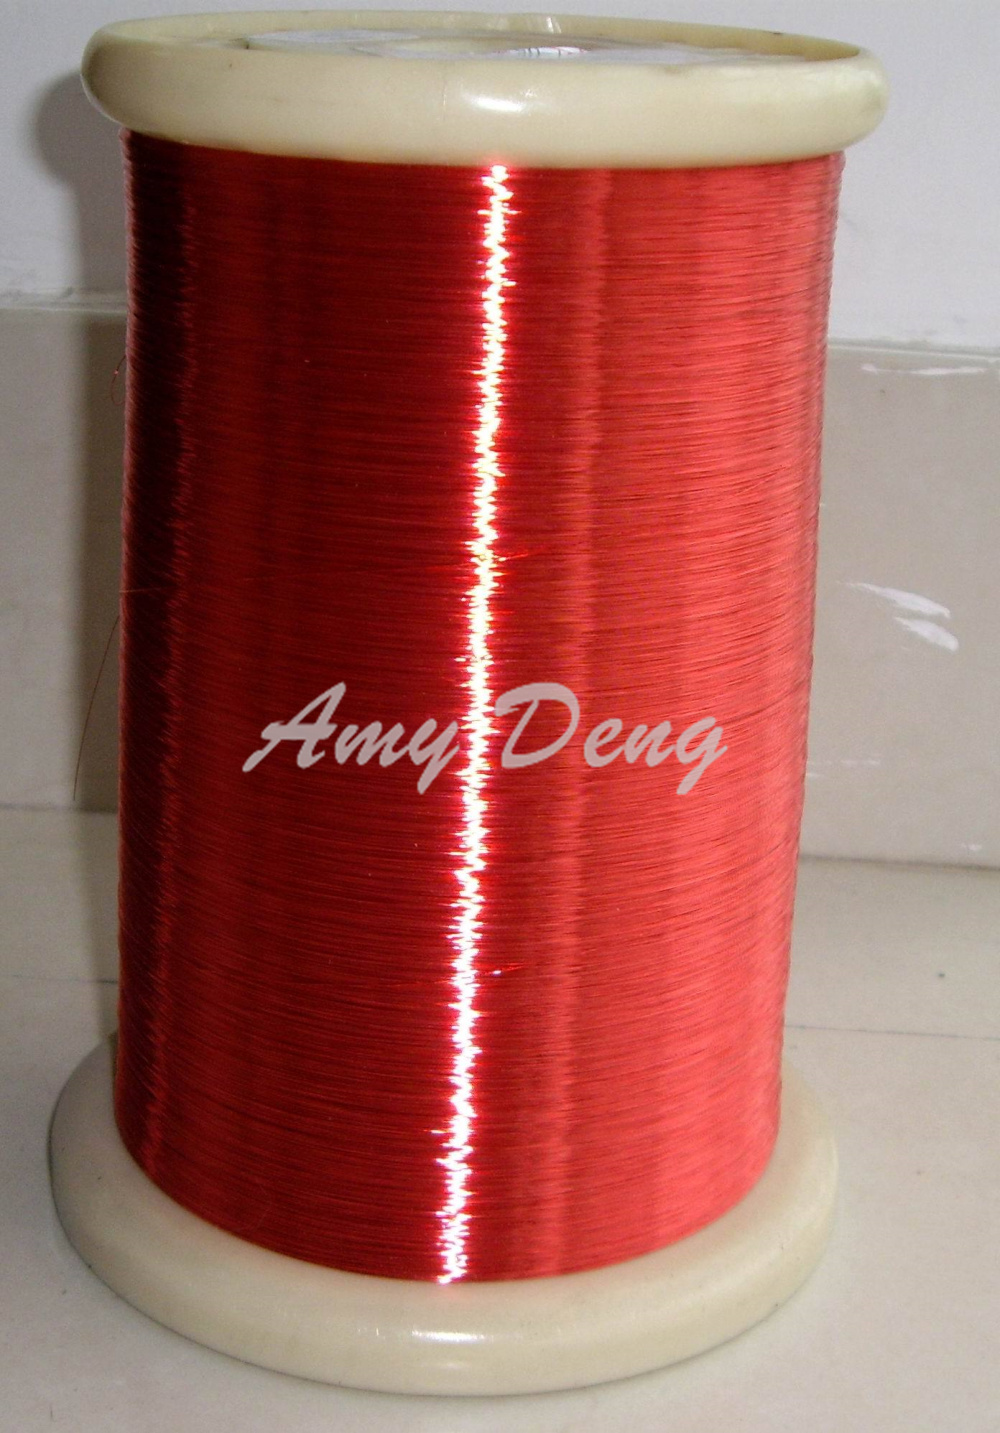 1000meters/lot  0.2 Mm New Polyurethane Enamel Covered Wire QA-1-155 Red Enamel Covered Wire 0.2mm